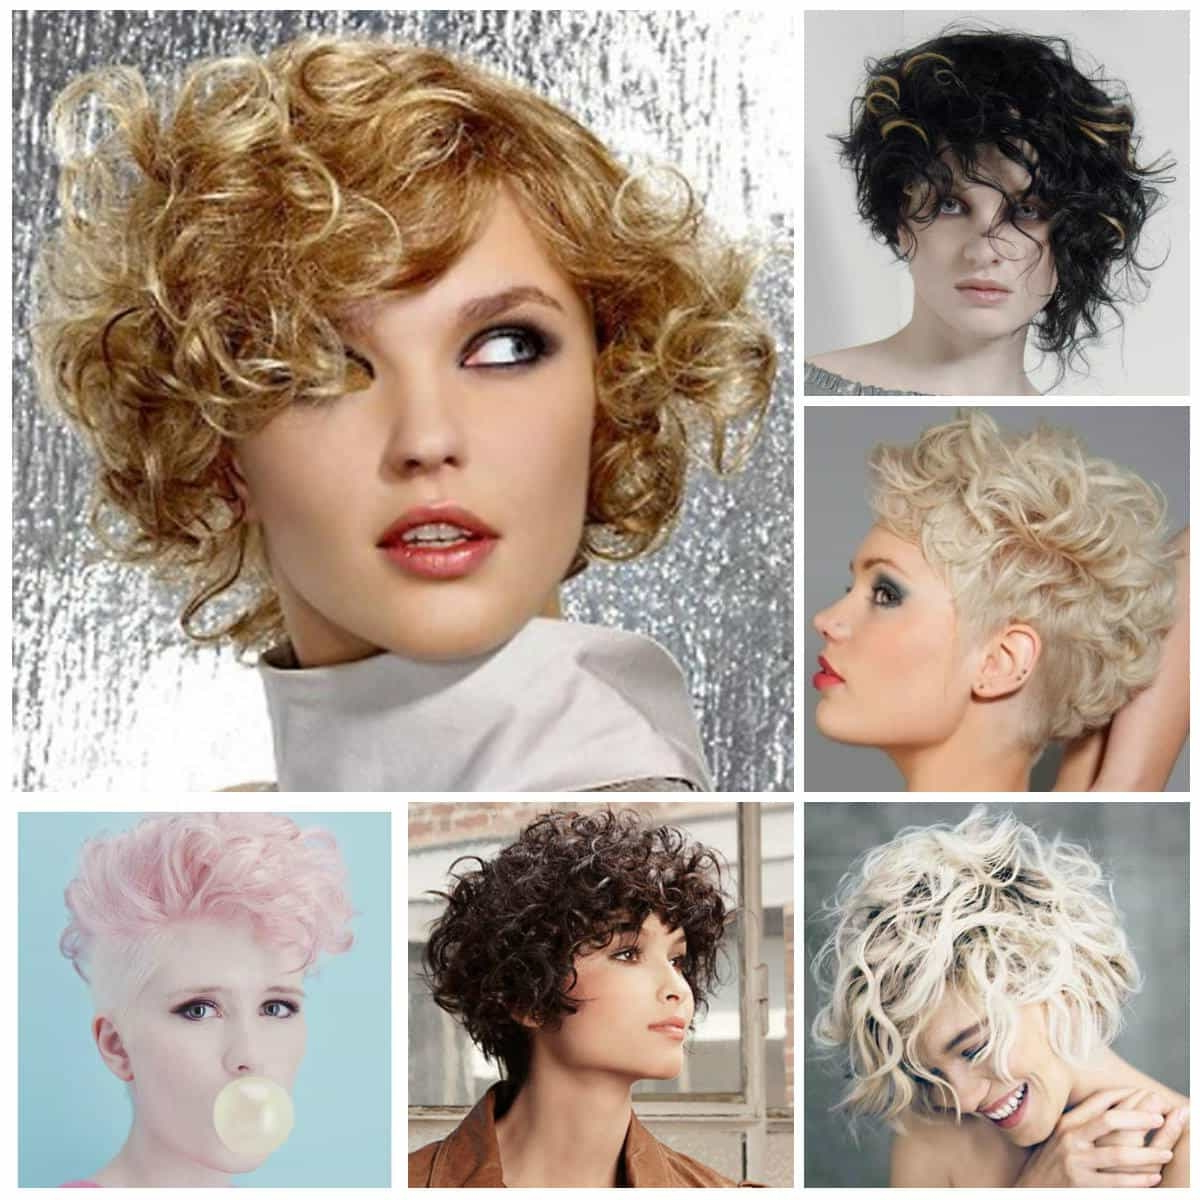 Short Curly Haircuts For Long Faces – Short And Cuts Hairstyles Inside Pixie Haircuts With Large Curls (View 18 of 20)